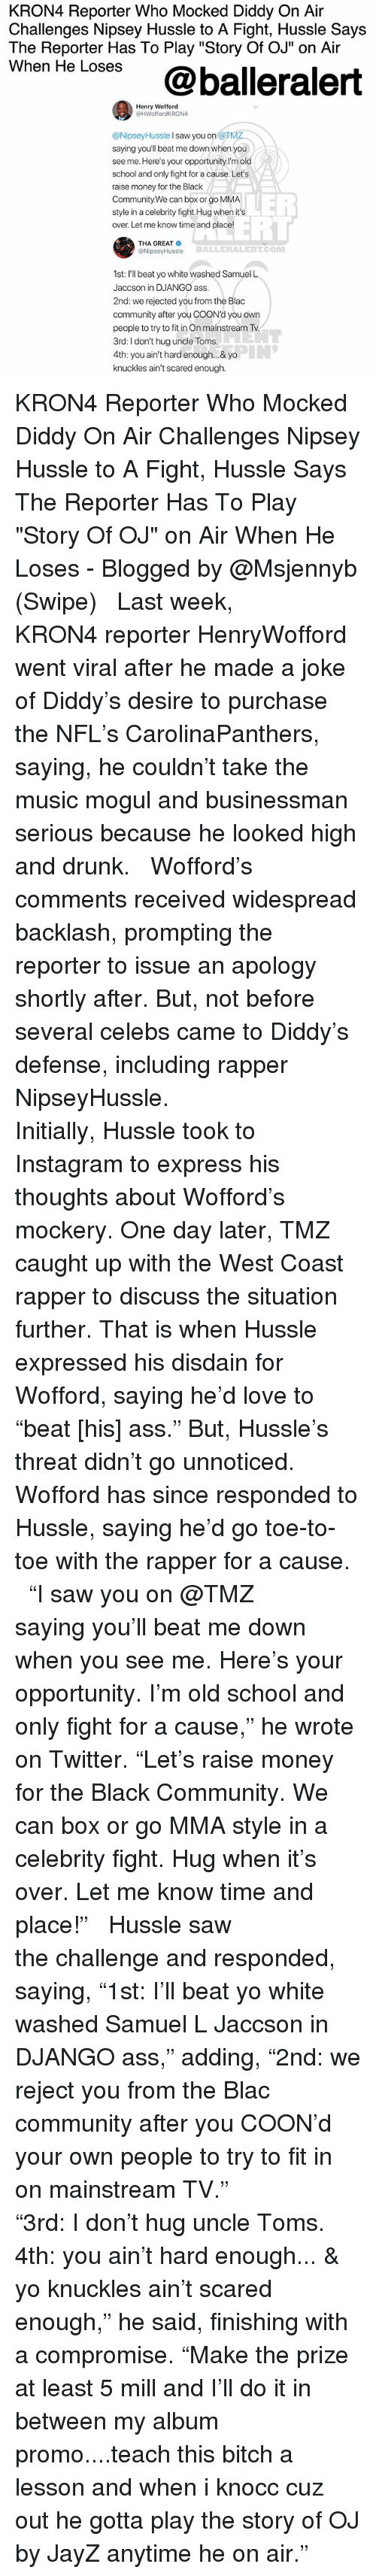 """nipsey hussle: KRON4 Reporter Who Mocked Diddy On Air  Challenges Nipsey Hussle to A Fight, Hussle Says  The Reporter Has To Play """"Story Of OJ"""" on Air  wnen He Loses@balleralert  Henry Wofford  @HWoffordKRON4  @NipseyHussle I saw you on @TM  saying you'll beat me down when you  see me. Here's your opportunity.l'm old  school and only fight for a cause. Let's  raise money for the Black  Community.We can box or go MMA  style in a celebrity fight.Hug when its  over. Let me know time and place!  LER  ELL  THA GREAT  @NipseyHussle  BALLERALERT.COM  1st: I'll beat yo white washed Samuel L  Jaccson in DJANGO ass  2nd: we rejected you from the Blac  community after you COON'd you own  people to try to in On mainstream Tv  3rd: I don't hug uncle Toms  4th: you ain't hard enough... & yo  knuckles ain't scared enough. KRON4 Reporter Who Mocked Diddy On Air Challenges Nipsey Hussle to A Fight, Hussle Says The Reporter Has To Play """"Story Of OJ"""" on Air When He Loses - Blogged by @Msjennyb (Swipe) ⠀⠀⠀⠀⠀⠀⠀ ⠀⠀⠀⠀⠀⠀⠀ Last week, KRON4 reporter HenryWofford went viral after he made a joke of Diddy's desire to purchase the NFL's CarolinaPanthers, saying, he couldn't take the music mogul and businessman serious because he looked high and drunk. ⠀⠀⠀⠀⠀⠀⠀ ⠀⠀⠀⠀⠀⠀⠀ Wofford's comments received widespread backlash, prompting the reporter to issue an apology shortly after. But, not before several celebs came to Diddy's defense, including rapper NipseyHussle. ⠀⠀⠀⠀⠀⠀⠀ ⠀⠀⠀⠀⠀⠀⠀ Initially, Hussle took to Instagram to express his thoughts about Wofford's mockery. One day later, TMZ caught up with the West Coast rapper to discuss the situation further. That is when Hussle expressed his disdain for Wofford, saying he'd love to """"beat [his] ass."""" But, Hussle's threat didn't go unnoticed. Wofford has since responded to Hussle, saying he'd go toe-to-toe with the rapper for a cause. ⠀⠀⠀⠀⠀⠀⠀ ⠀⠀⠀⠀⠀⠀⠀ """"I saw you on @TMZ saying you'll beat me down when you see me. Here's your opportunity. I'm old school and only """